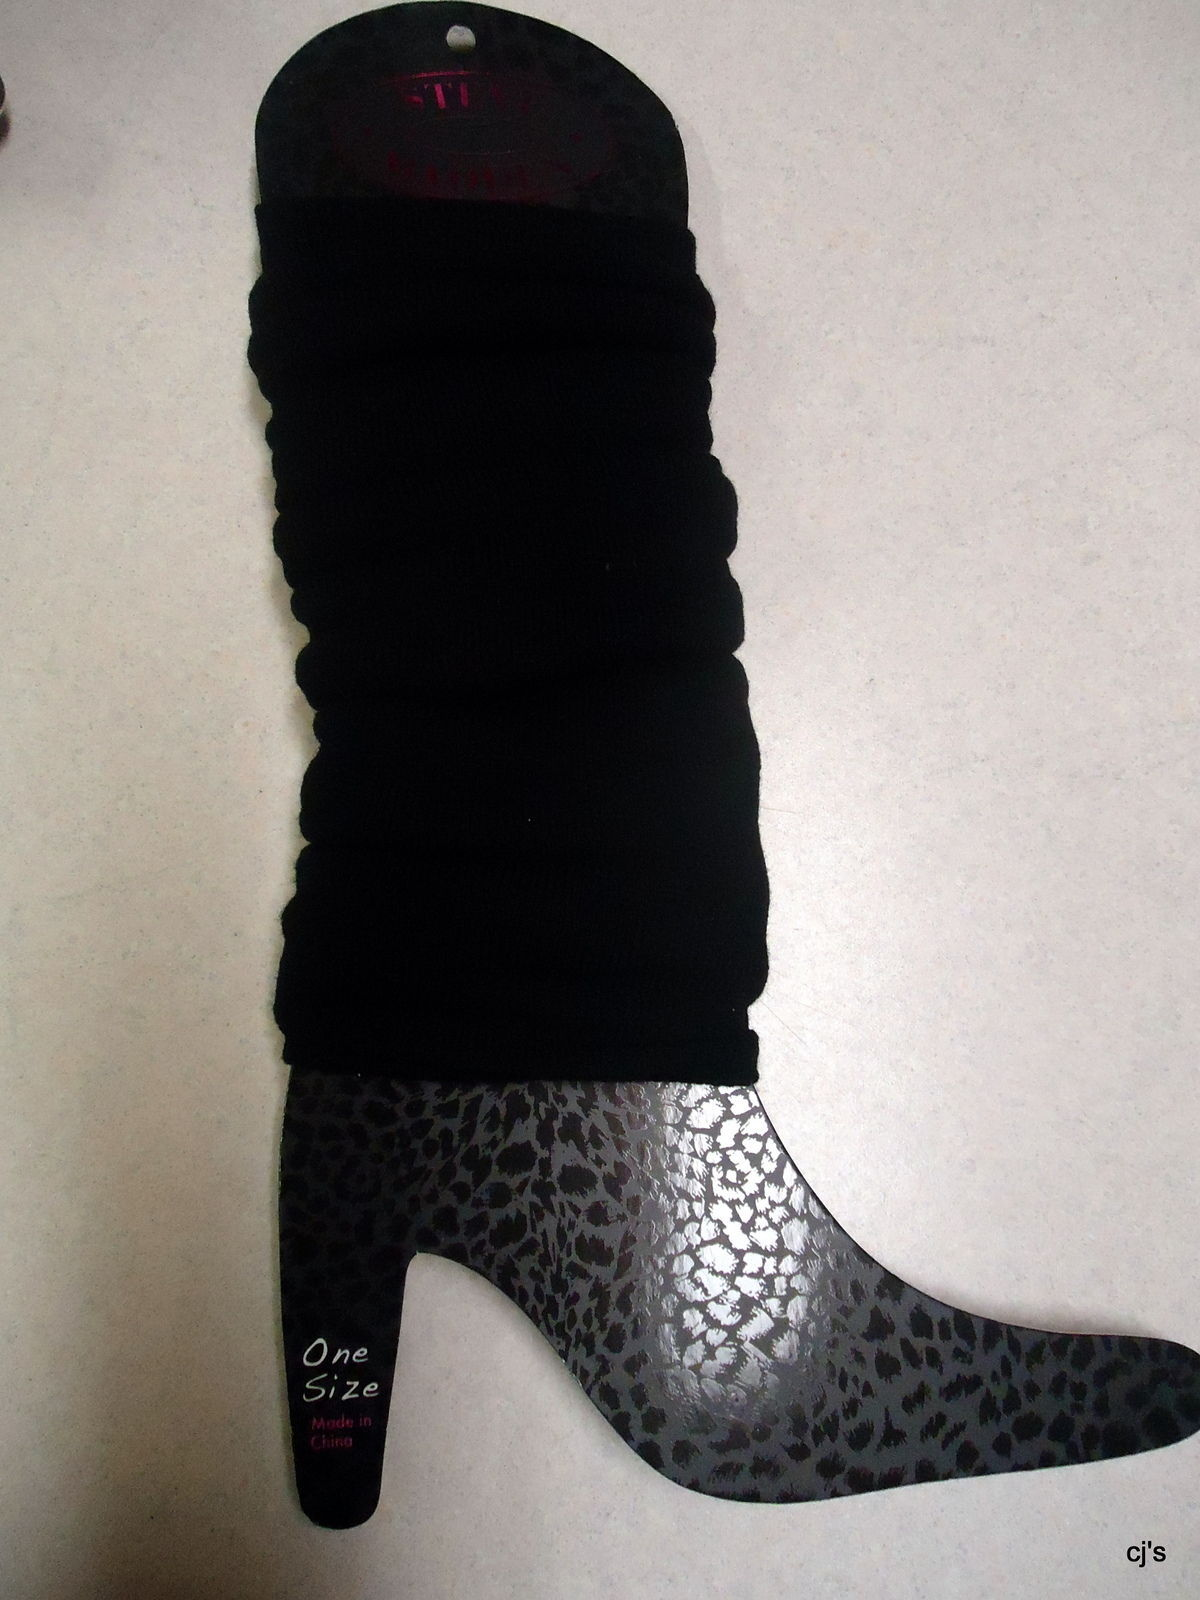 Steve Madden Leg Warmers in Black One size fits all